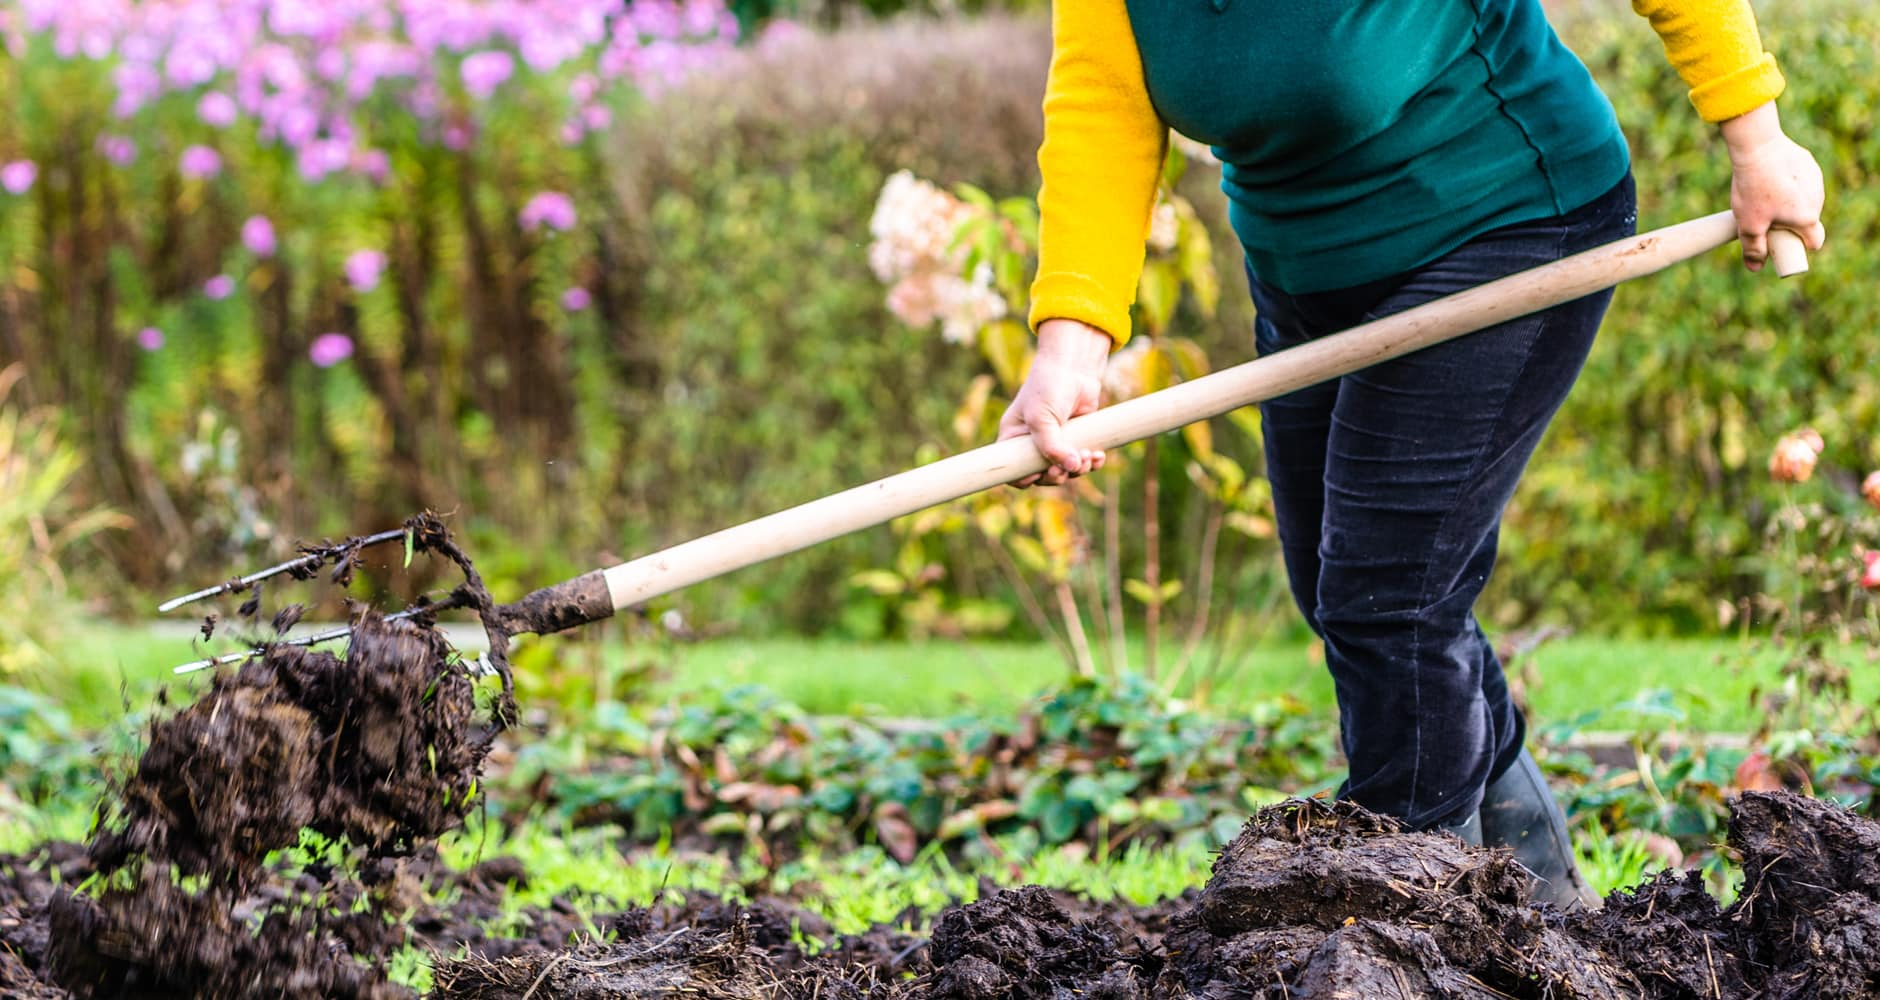 Gardening mistakes - woman using a pitchfork to turn garden soil